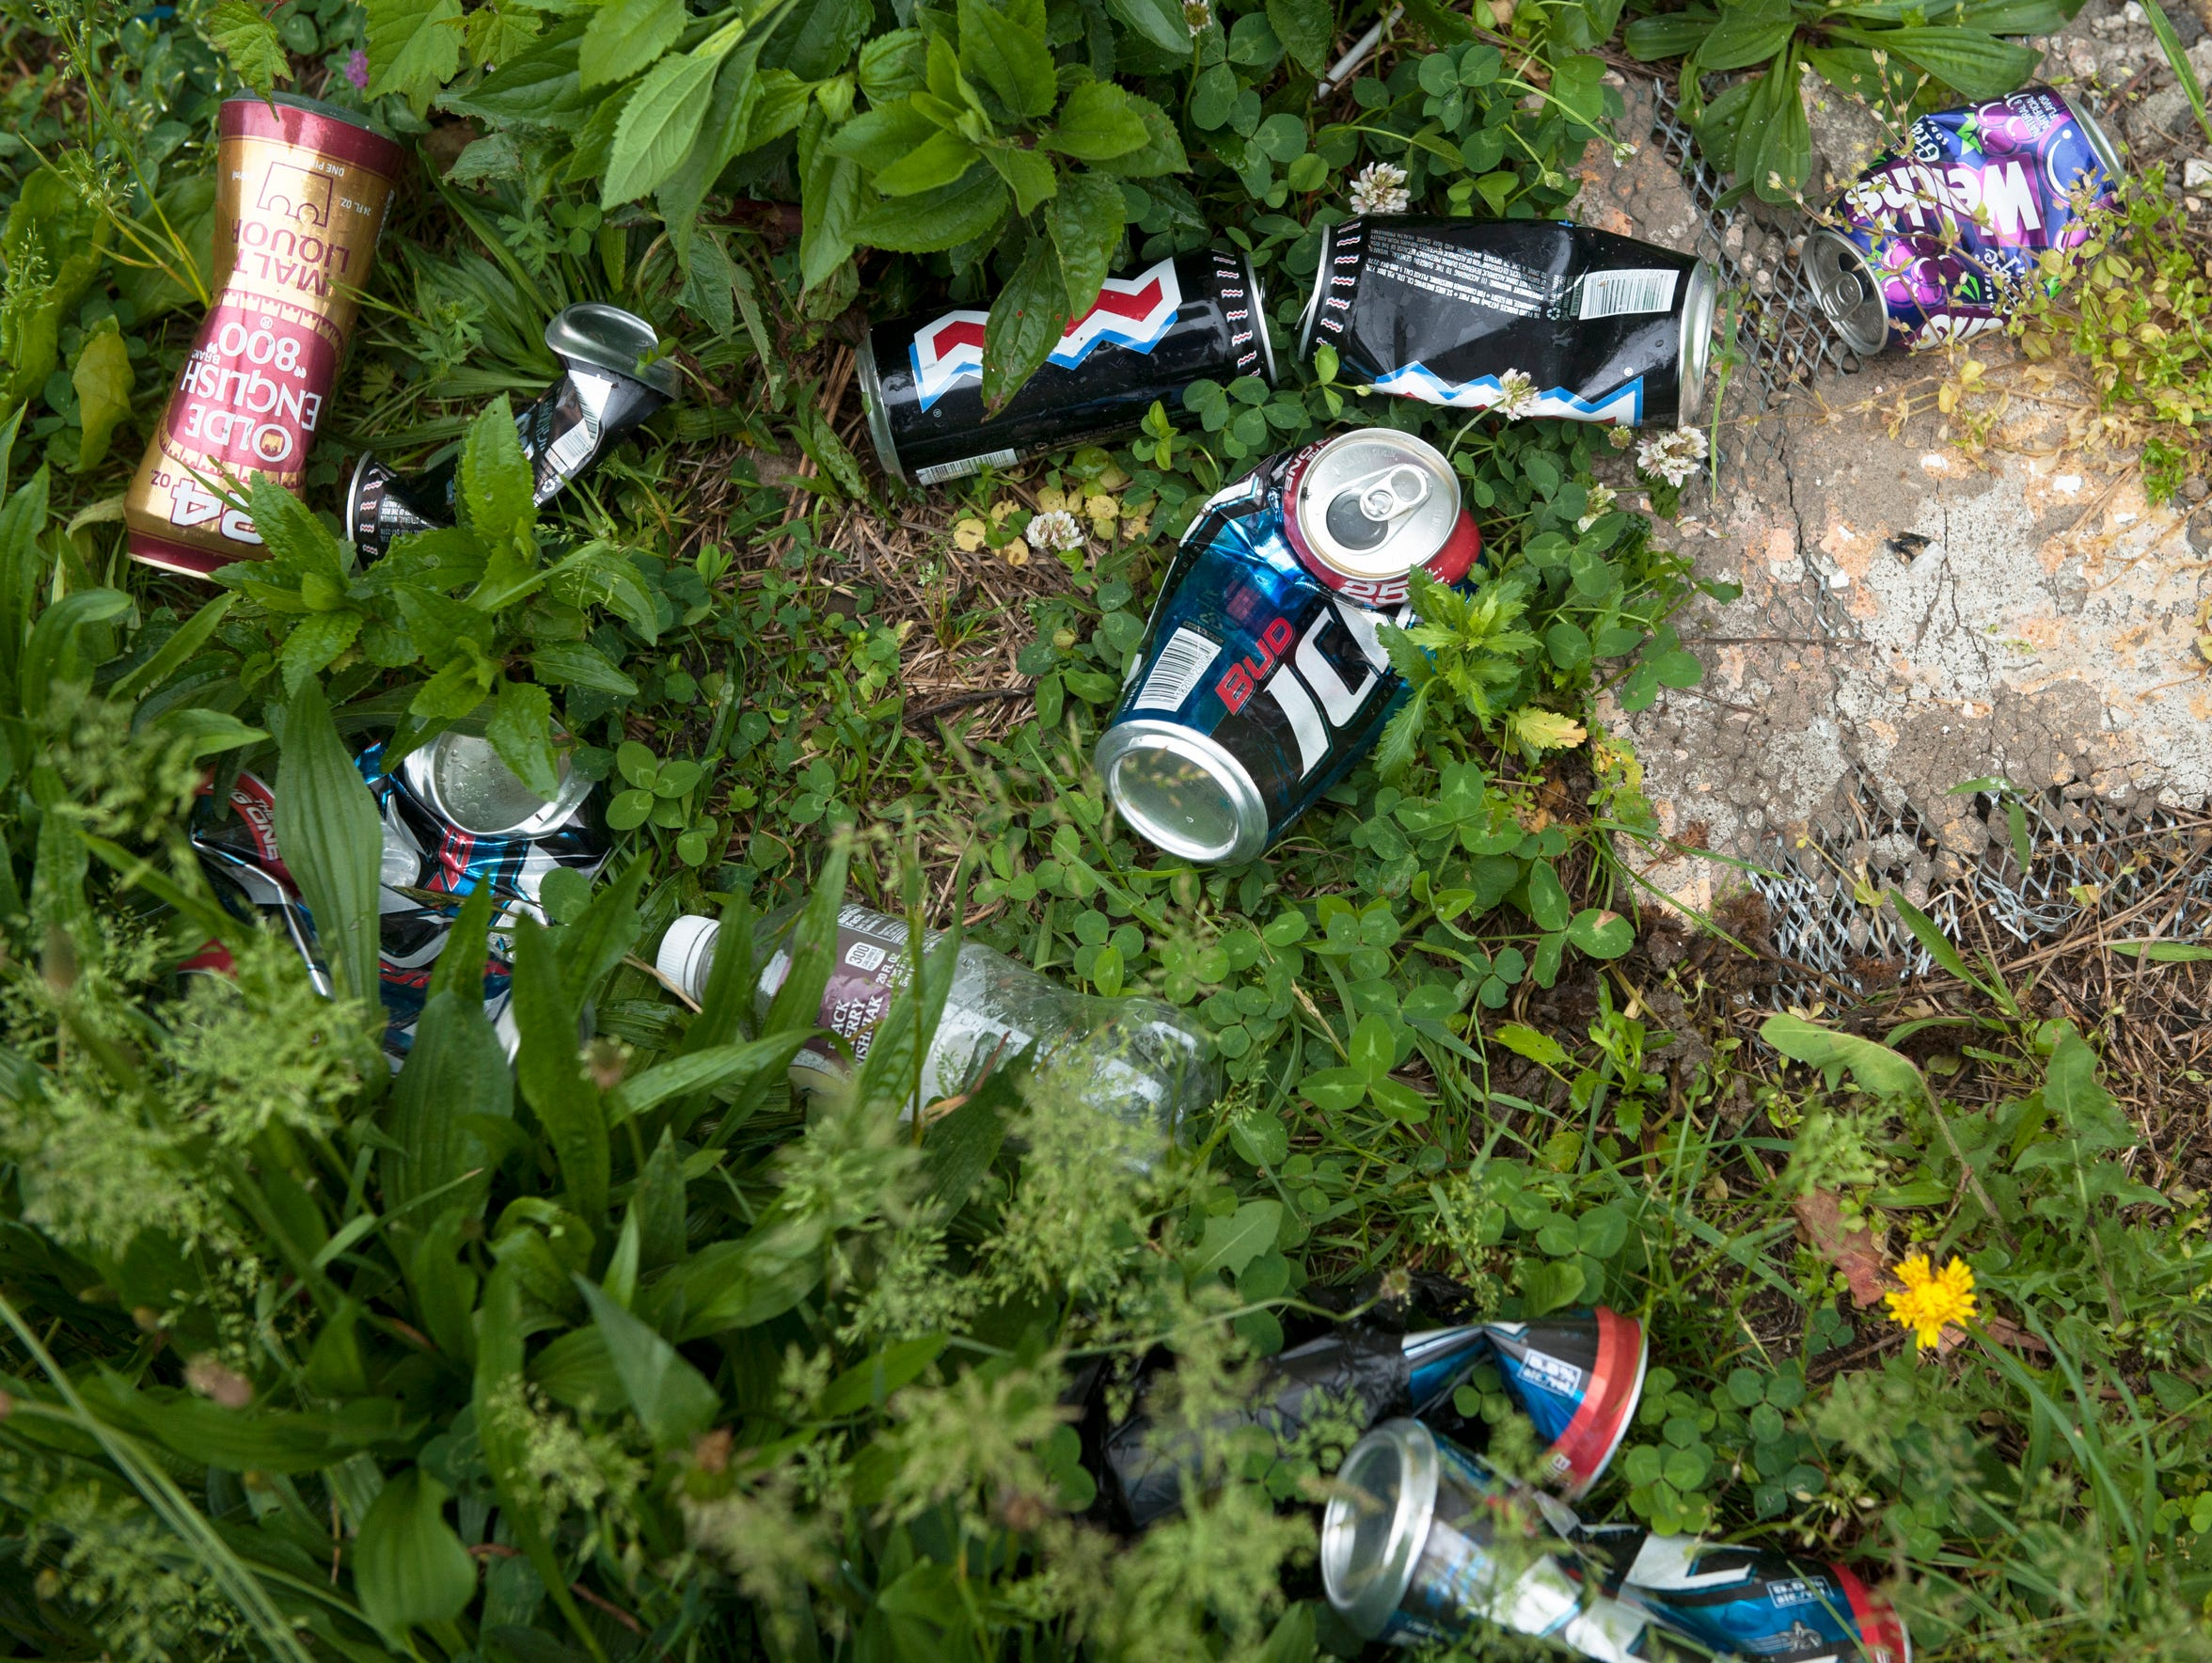 The Evergreen Cemetery in Camden is overgrown and littered